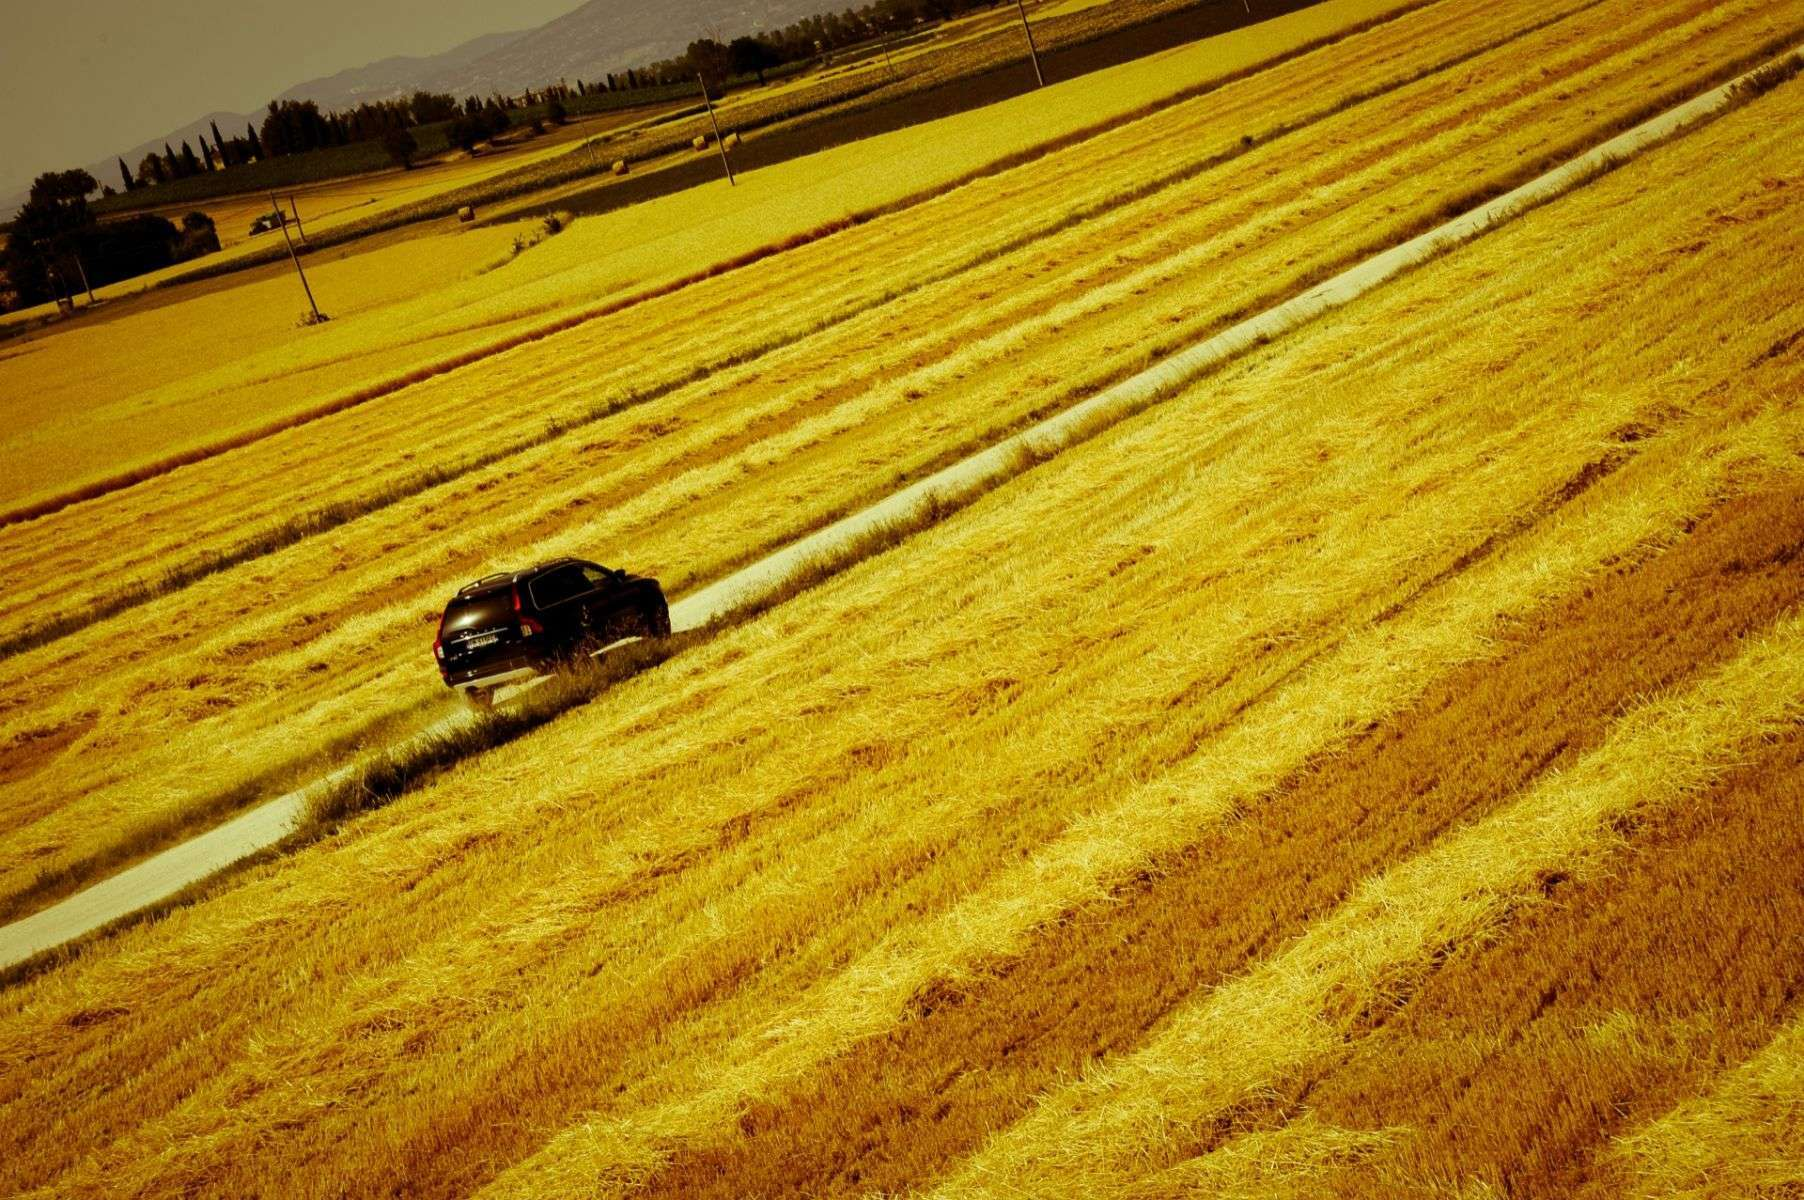 VOLVO XC90 YELLOW FIELD